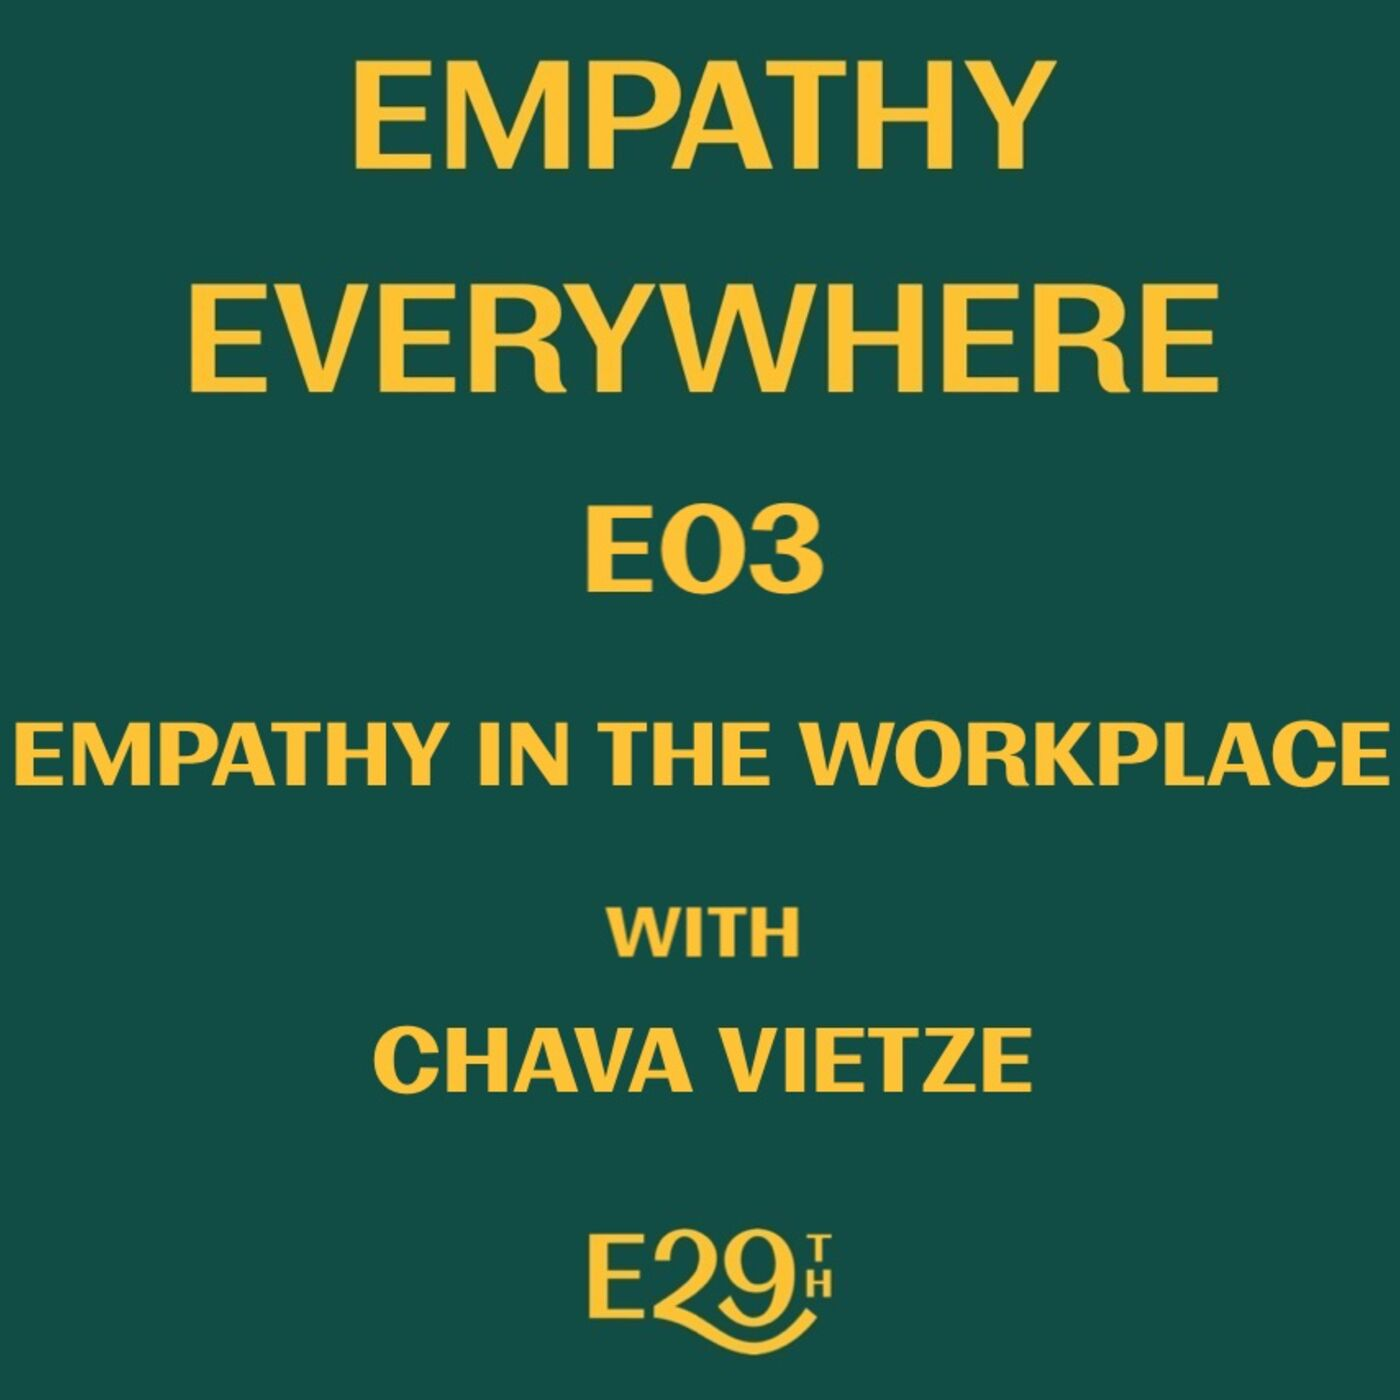 E03 - Empathy in the Workplace